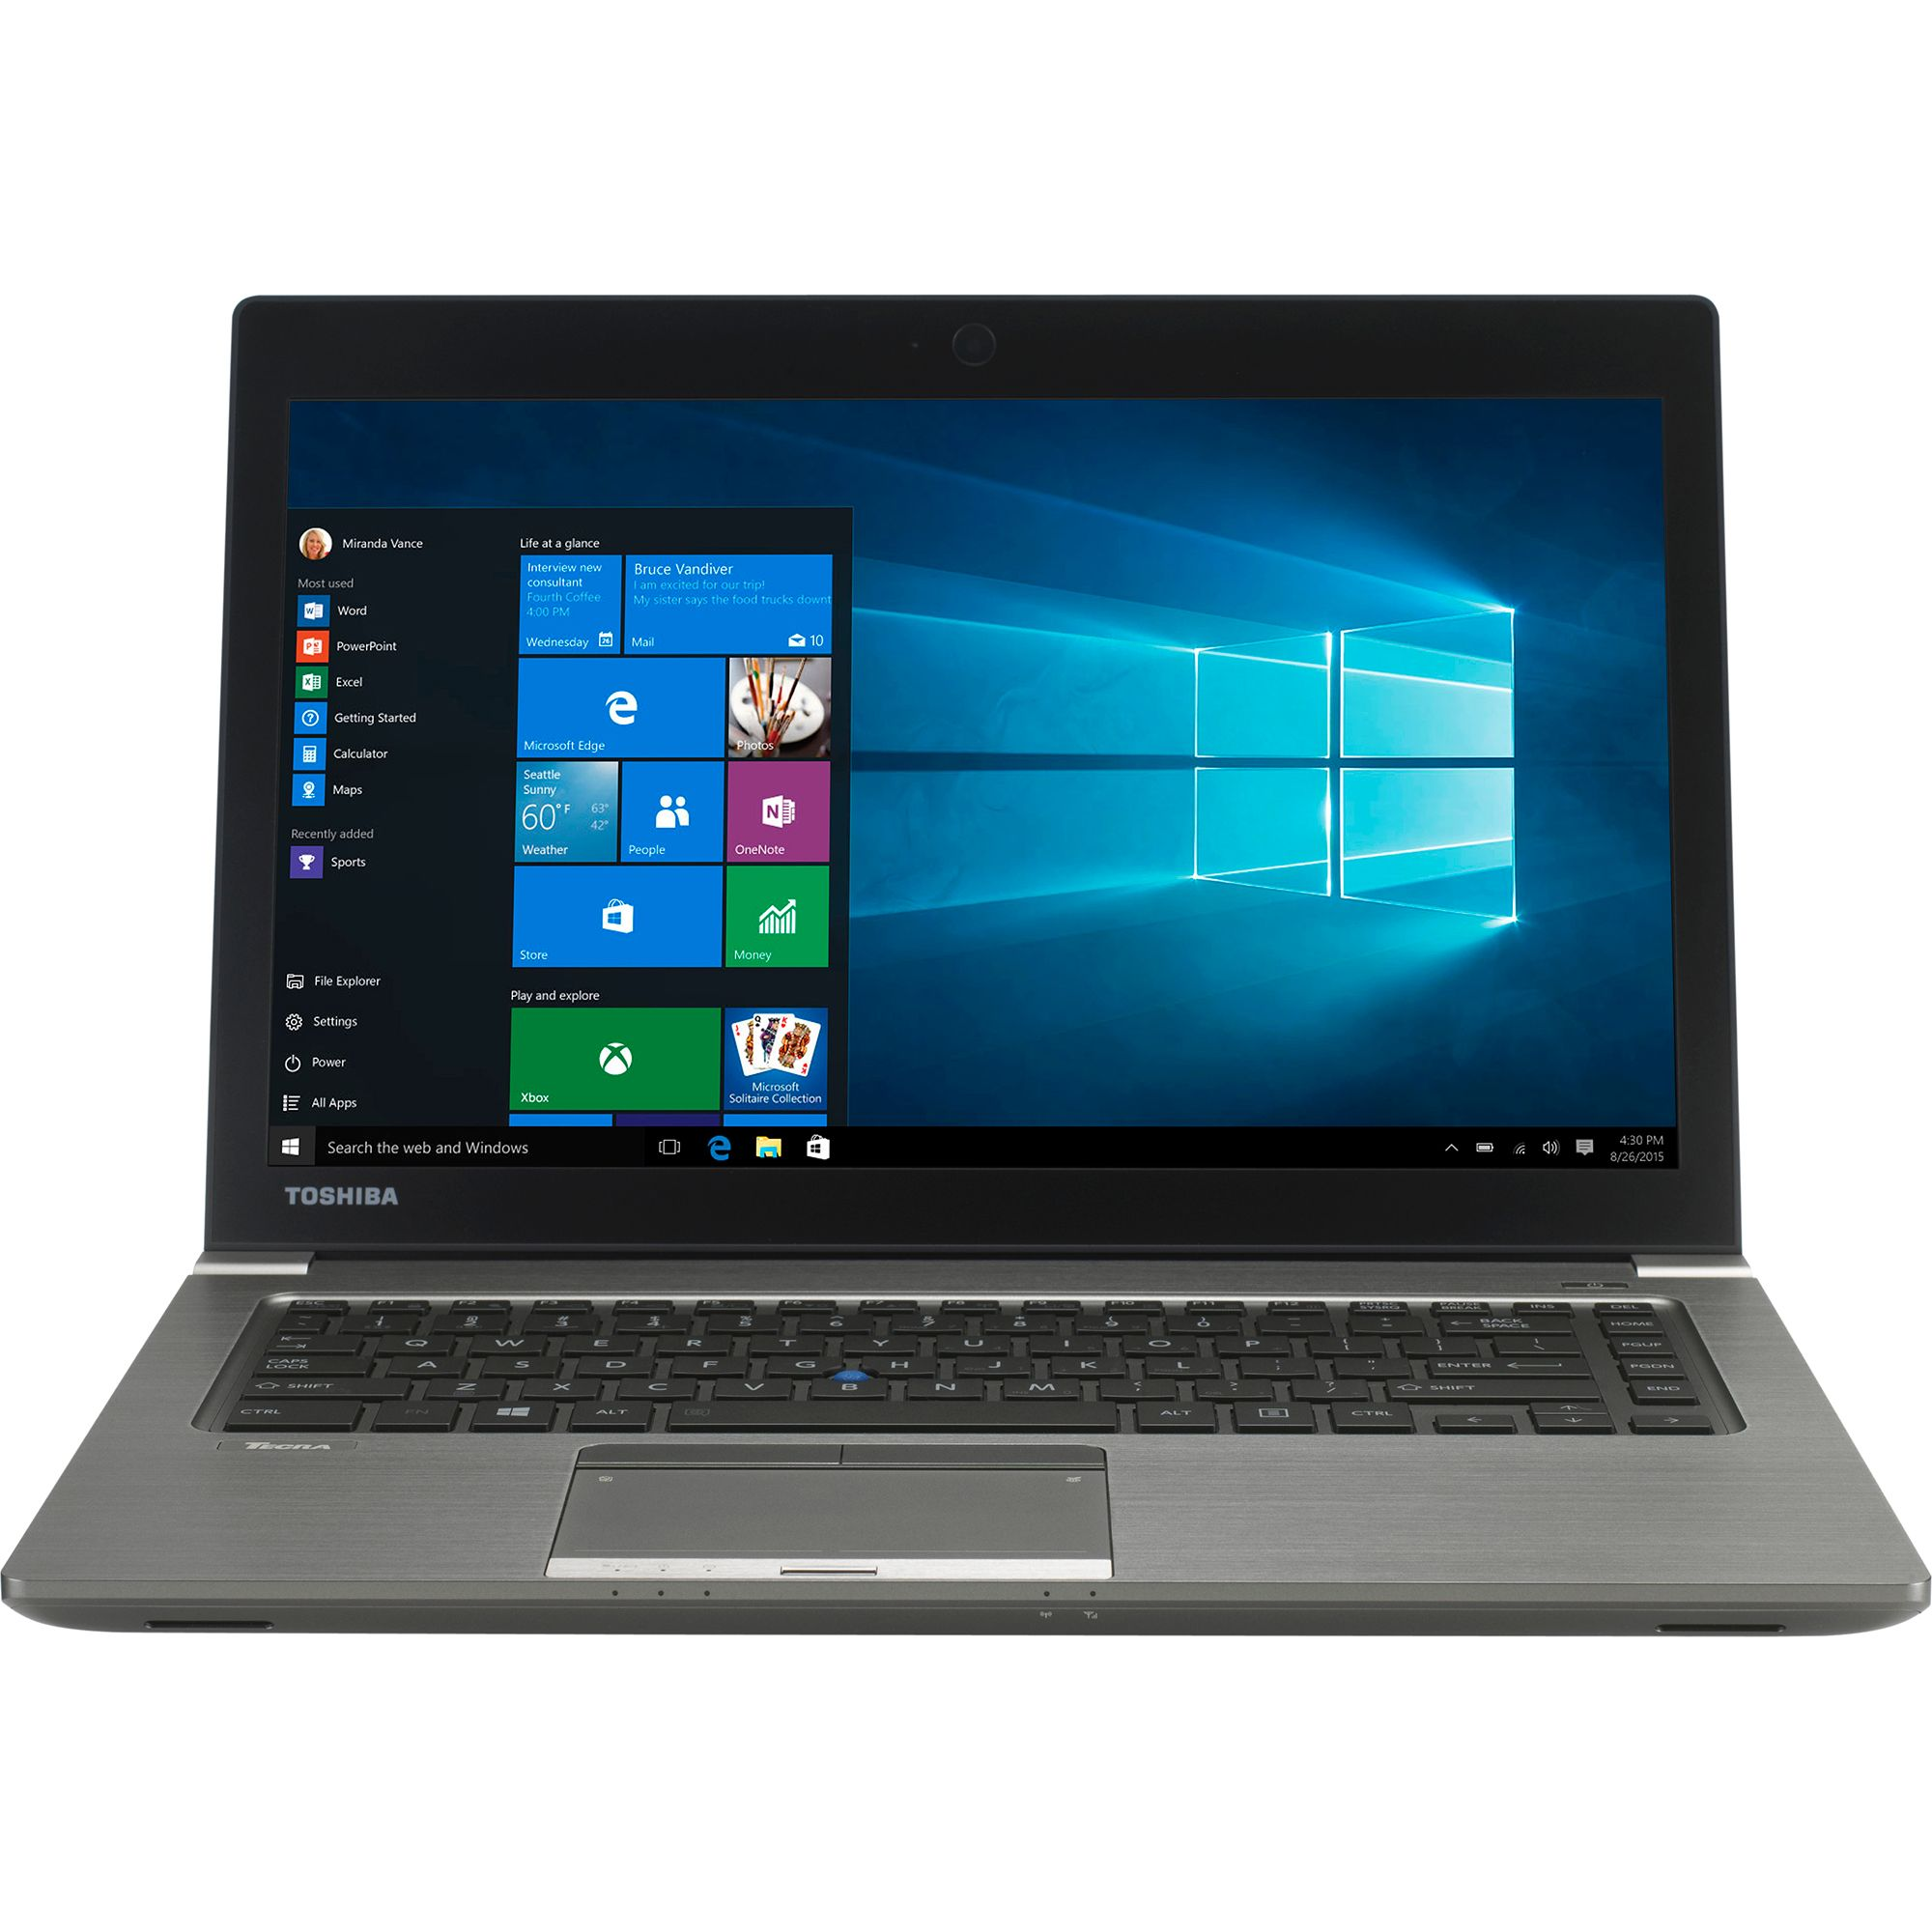 Ultrabook Toshiba Tecra Z40-C 14 Full HD Intel Core i5-6200U RAM 8GB SSD 256GB Windows 10 Pro